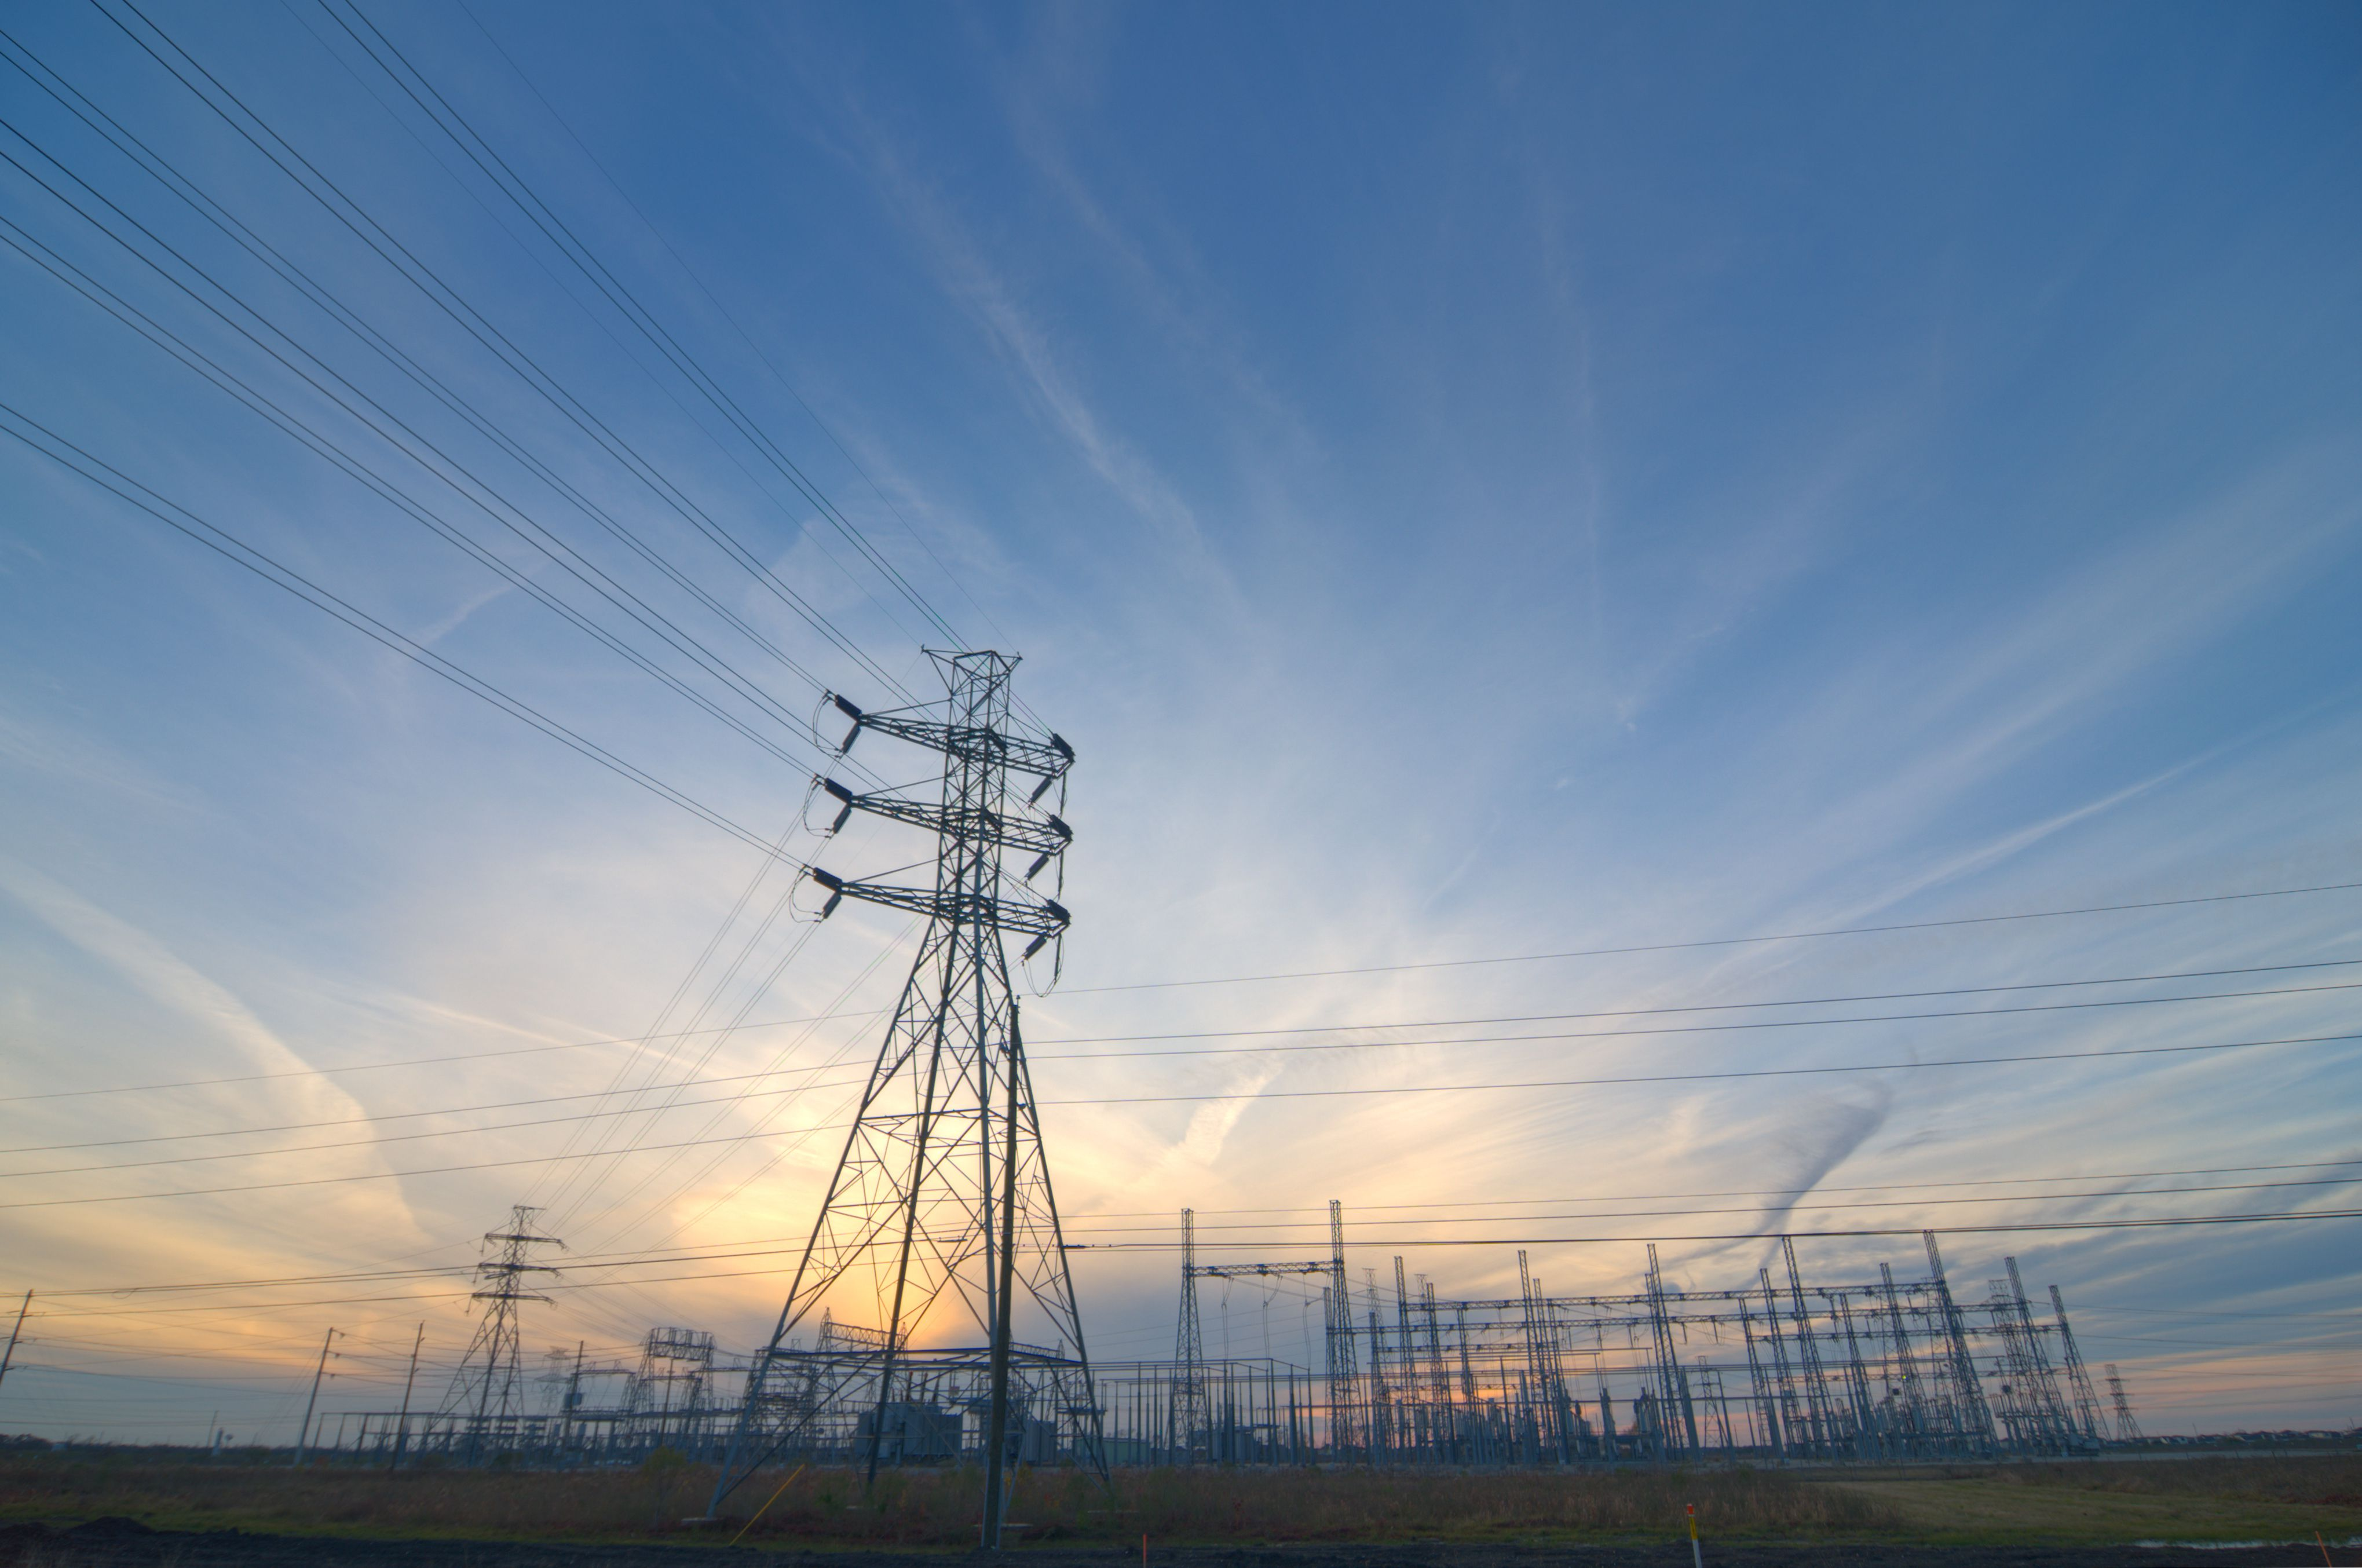 A Carrington-level space-weather event would wreak havoc on our aging power grid